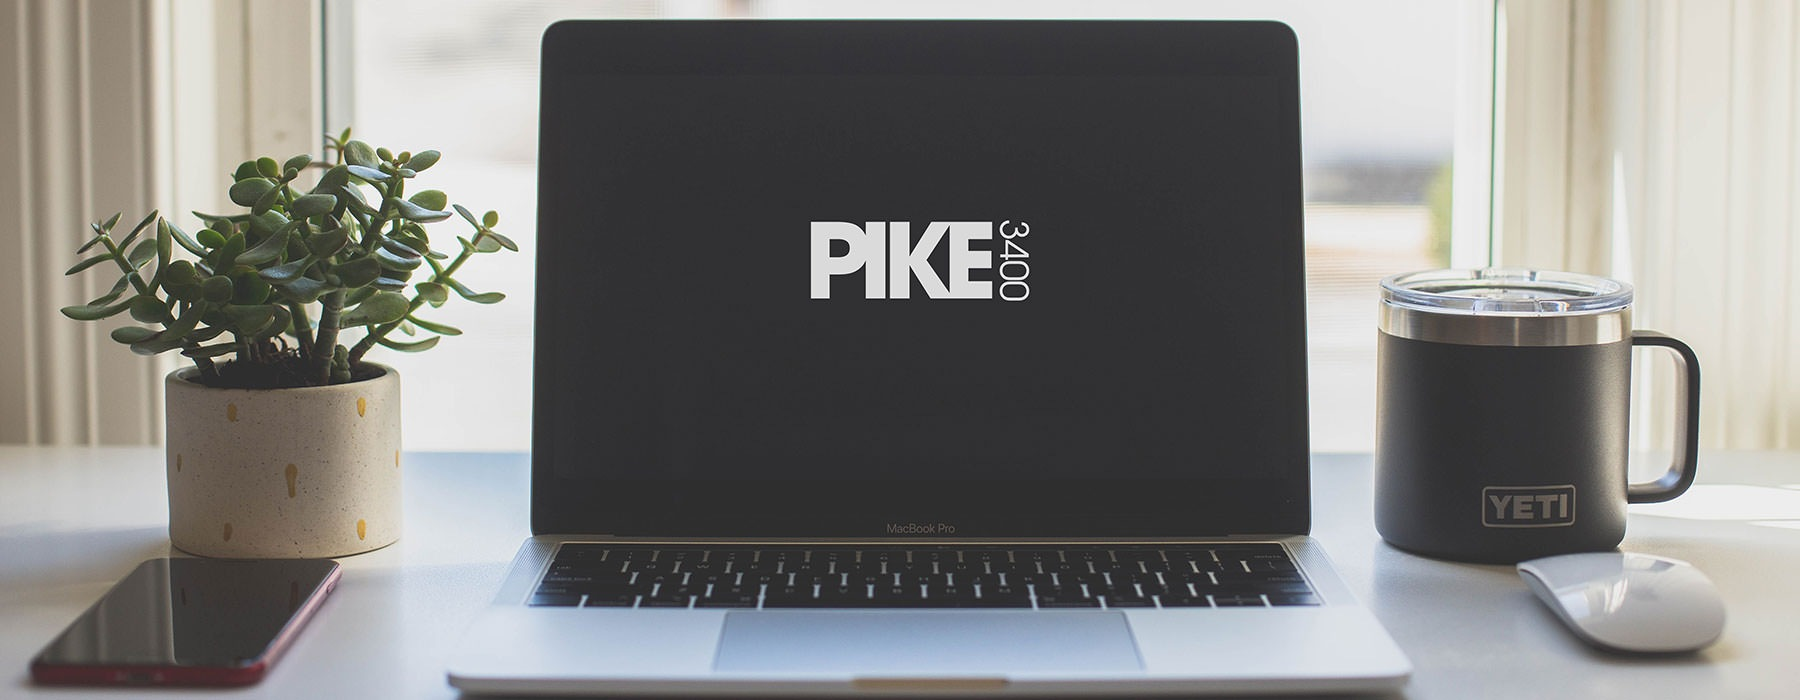 lifestyle image of a laptop displaying the Pike 3400 logo